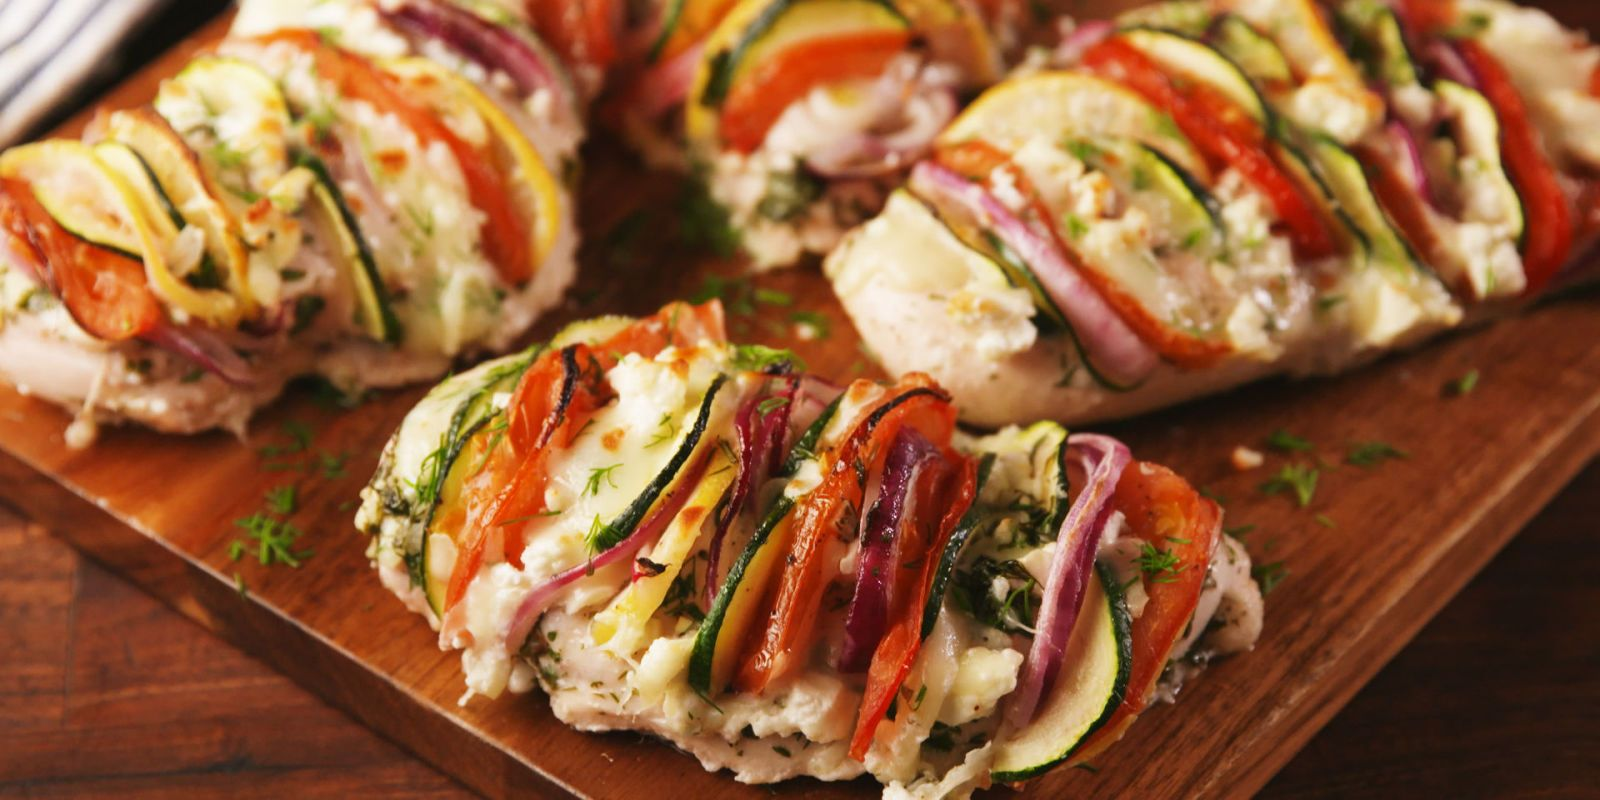 80+ Easy Healthy Dinner Ideas - Best Recipes for Healthy Dinners—Delish.com